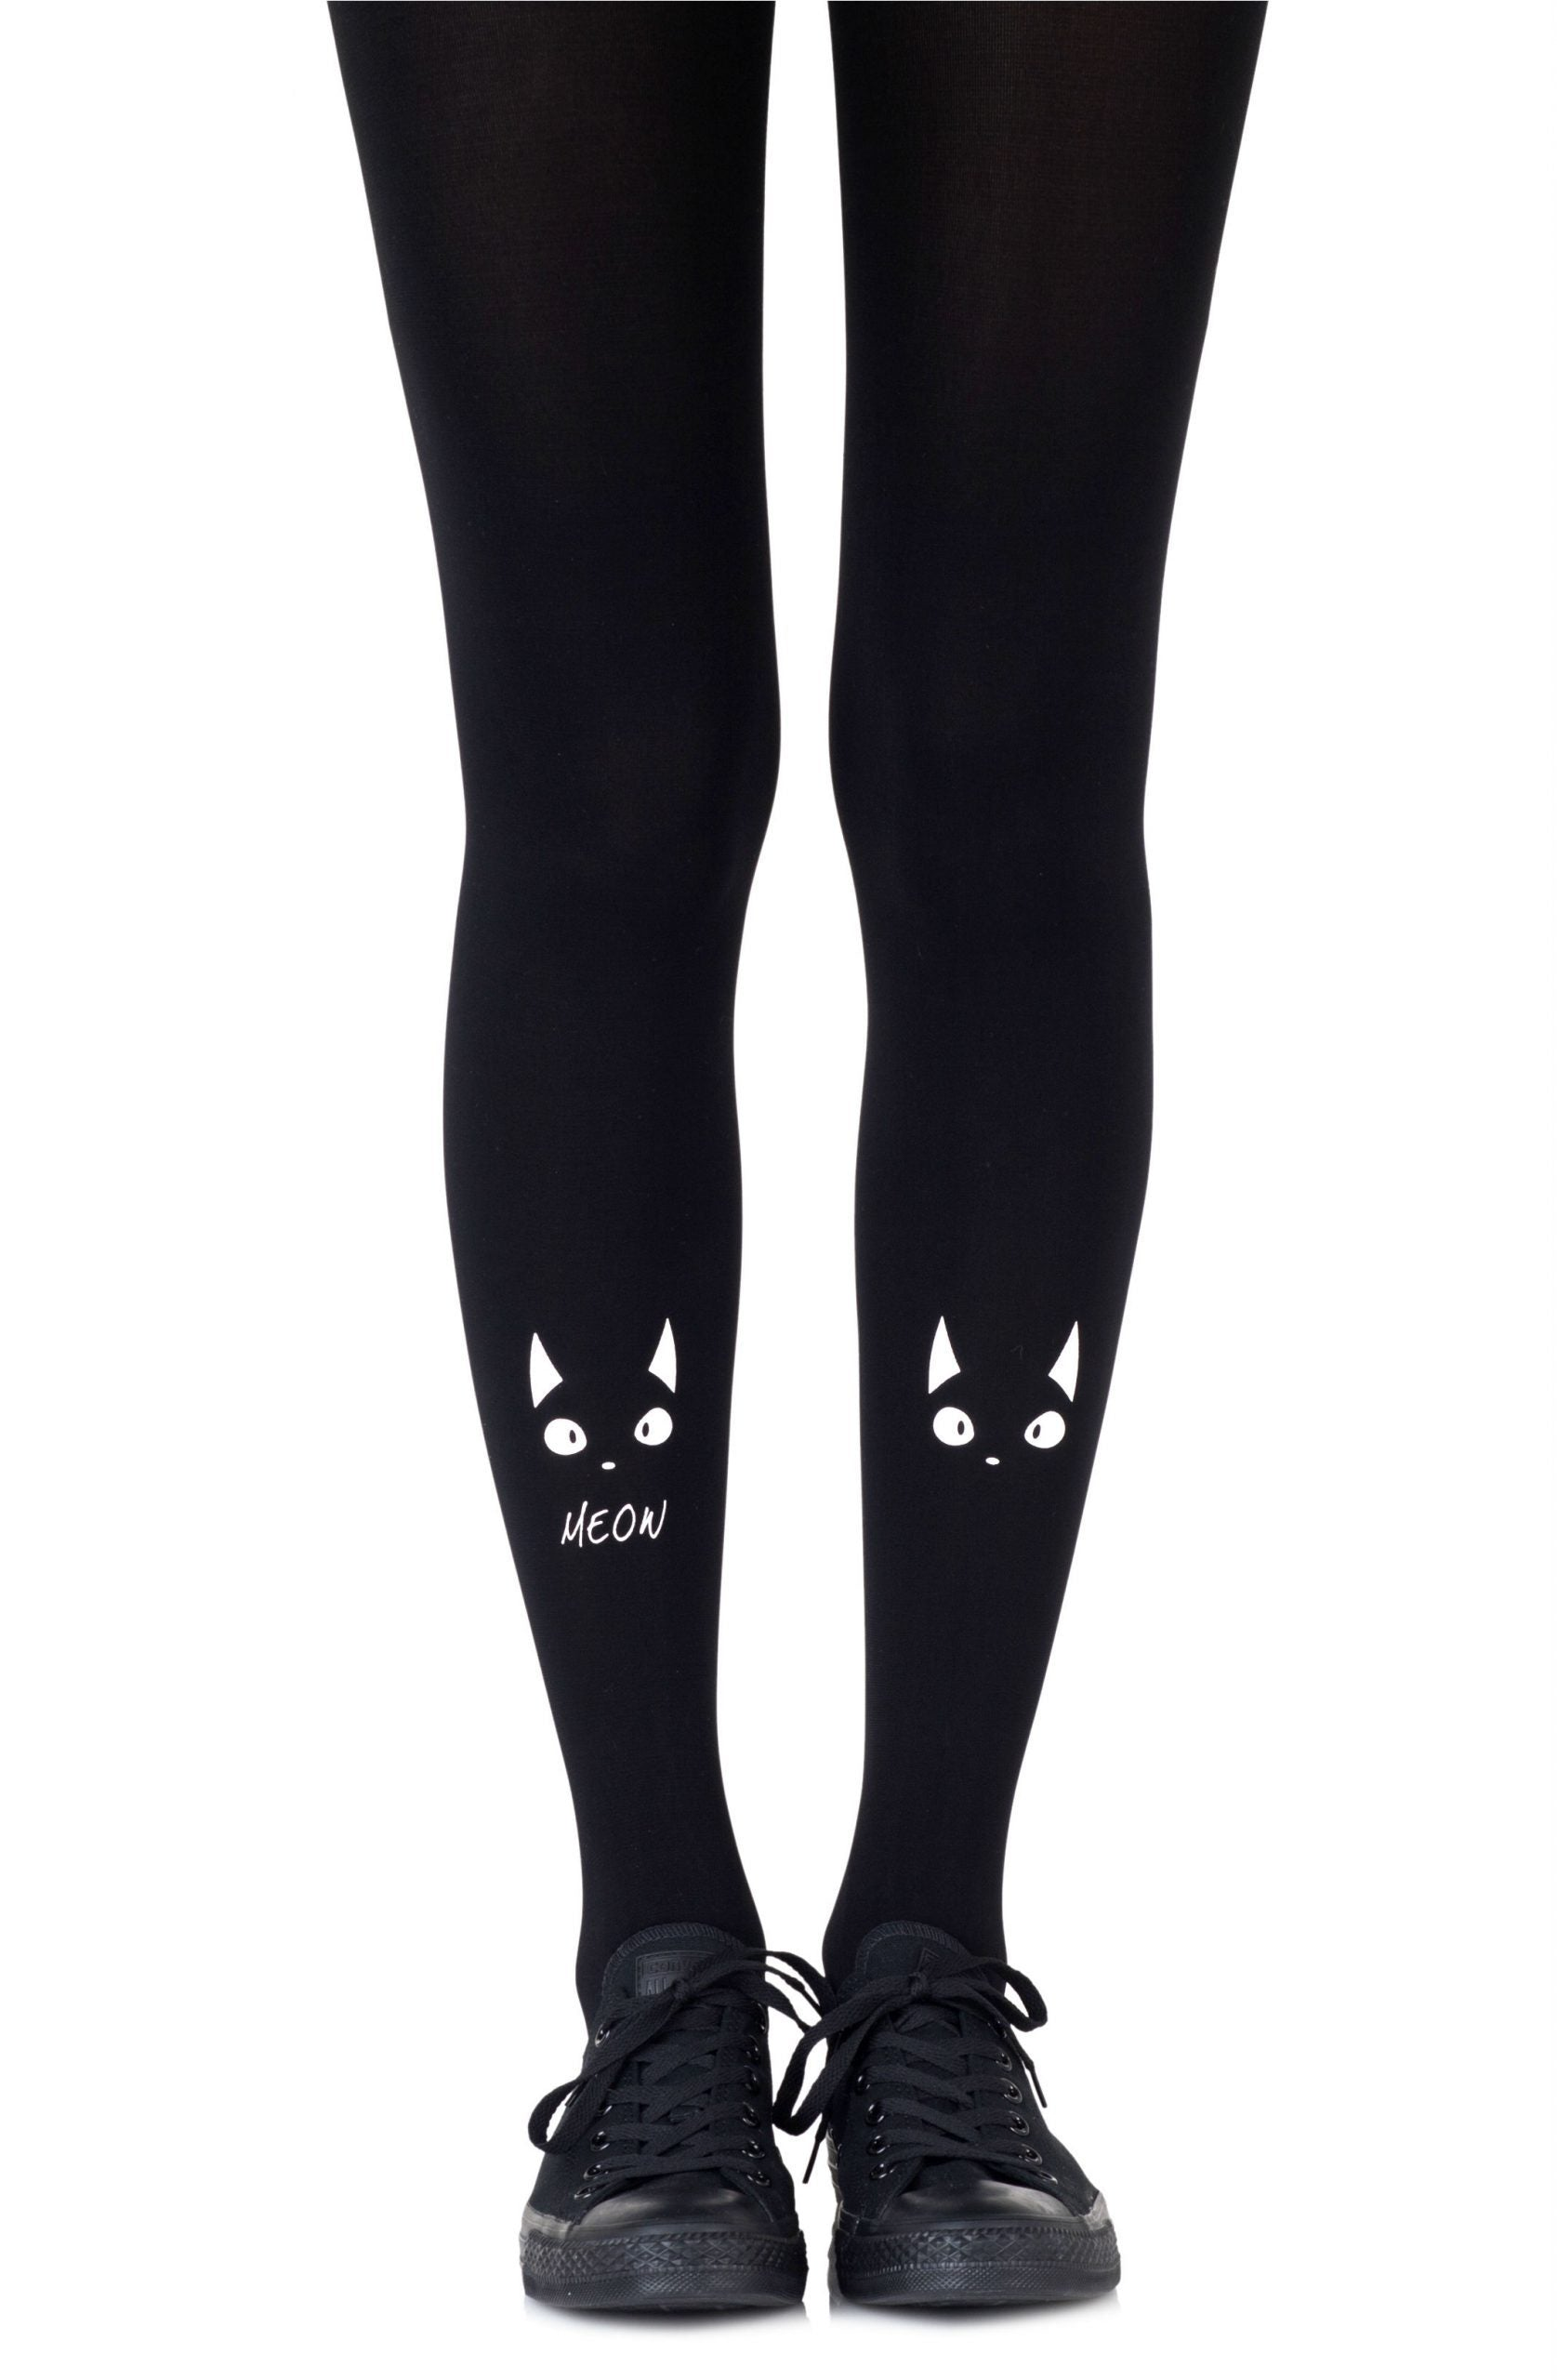 Zohara Nice Kitty White Print Tights - Lingerie Best